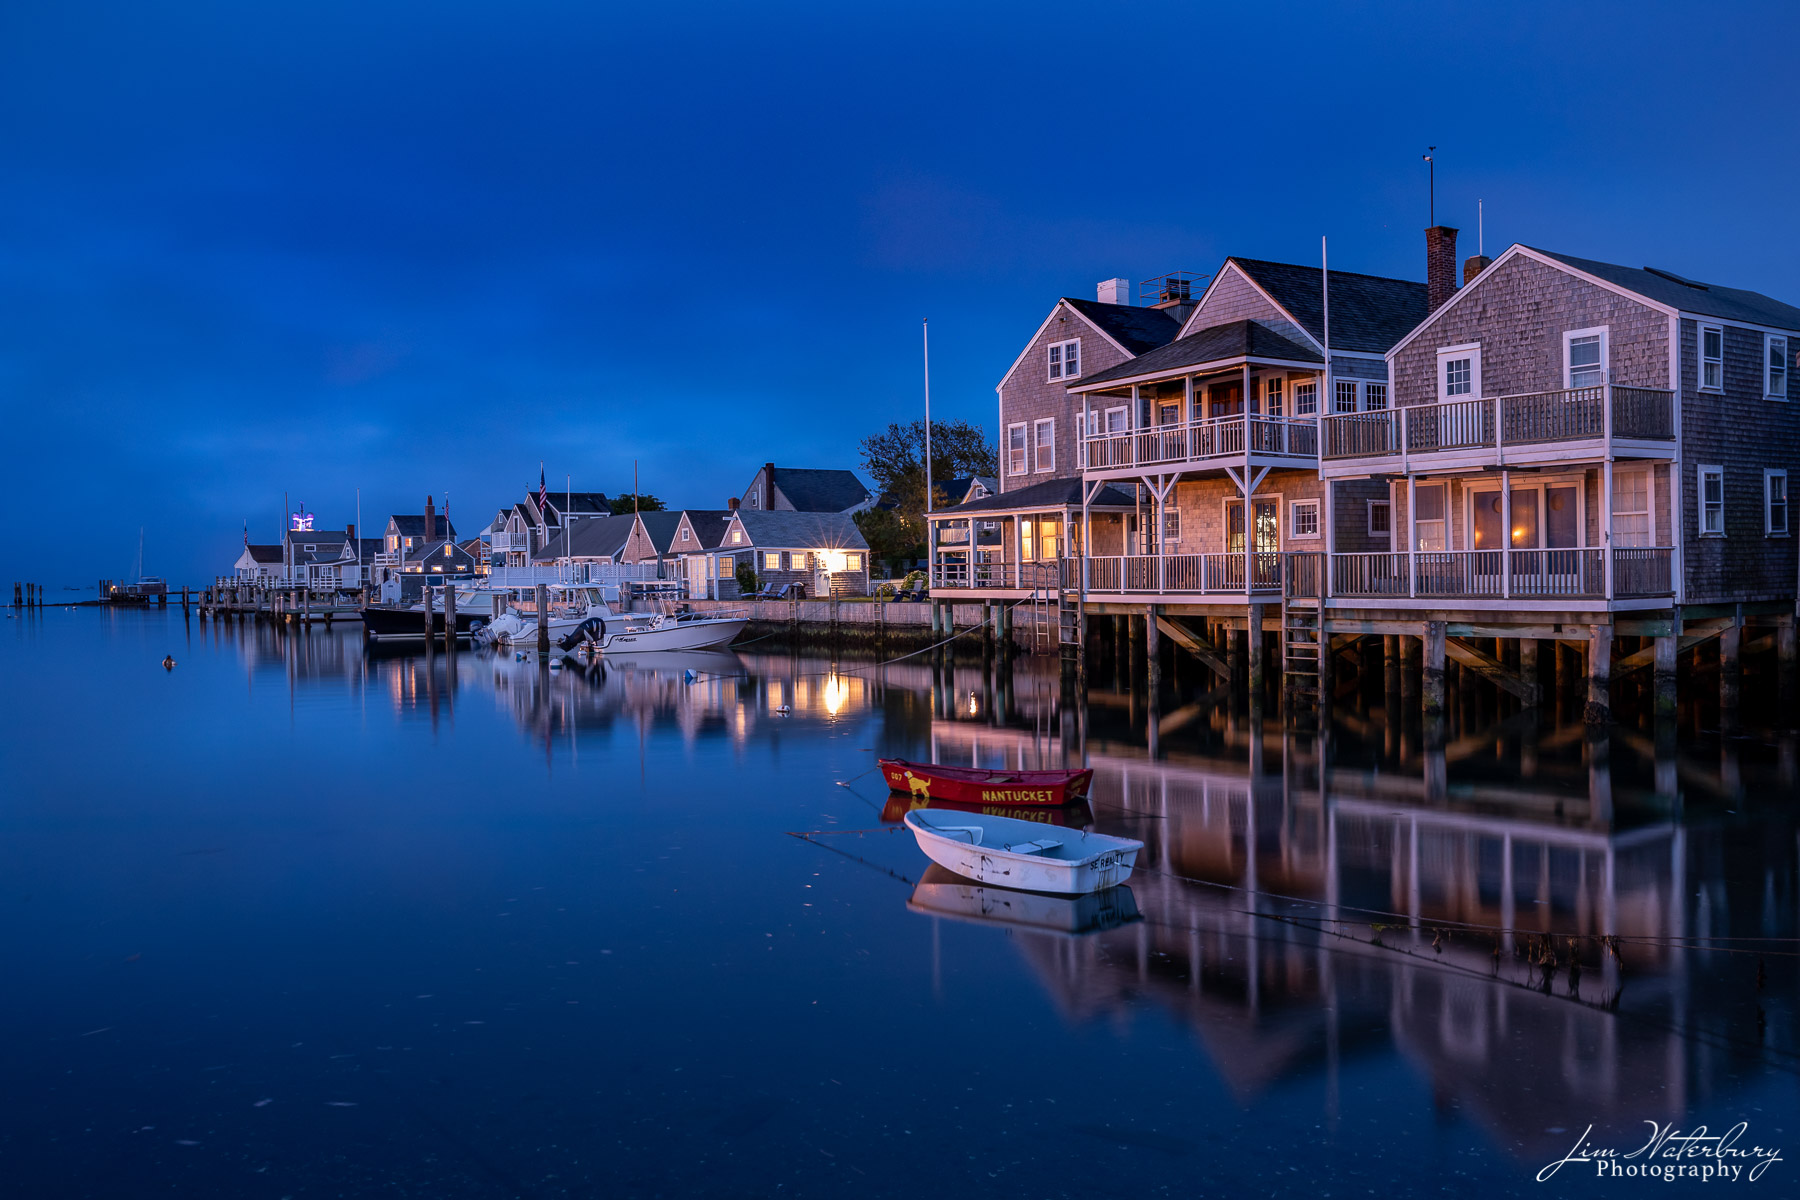 Nantucket, Easy Street Basin, Old North Wharf, cottages, Sunkin Ship, red rowboat, stars, night, photo